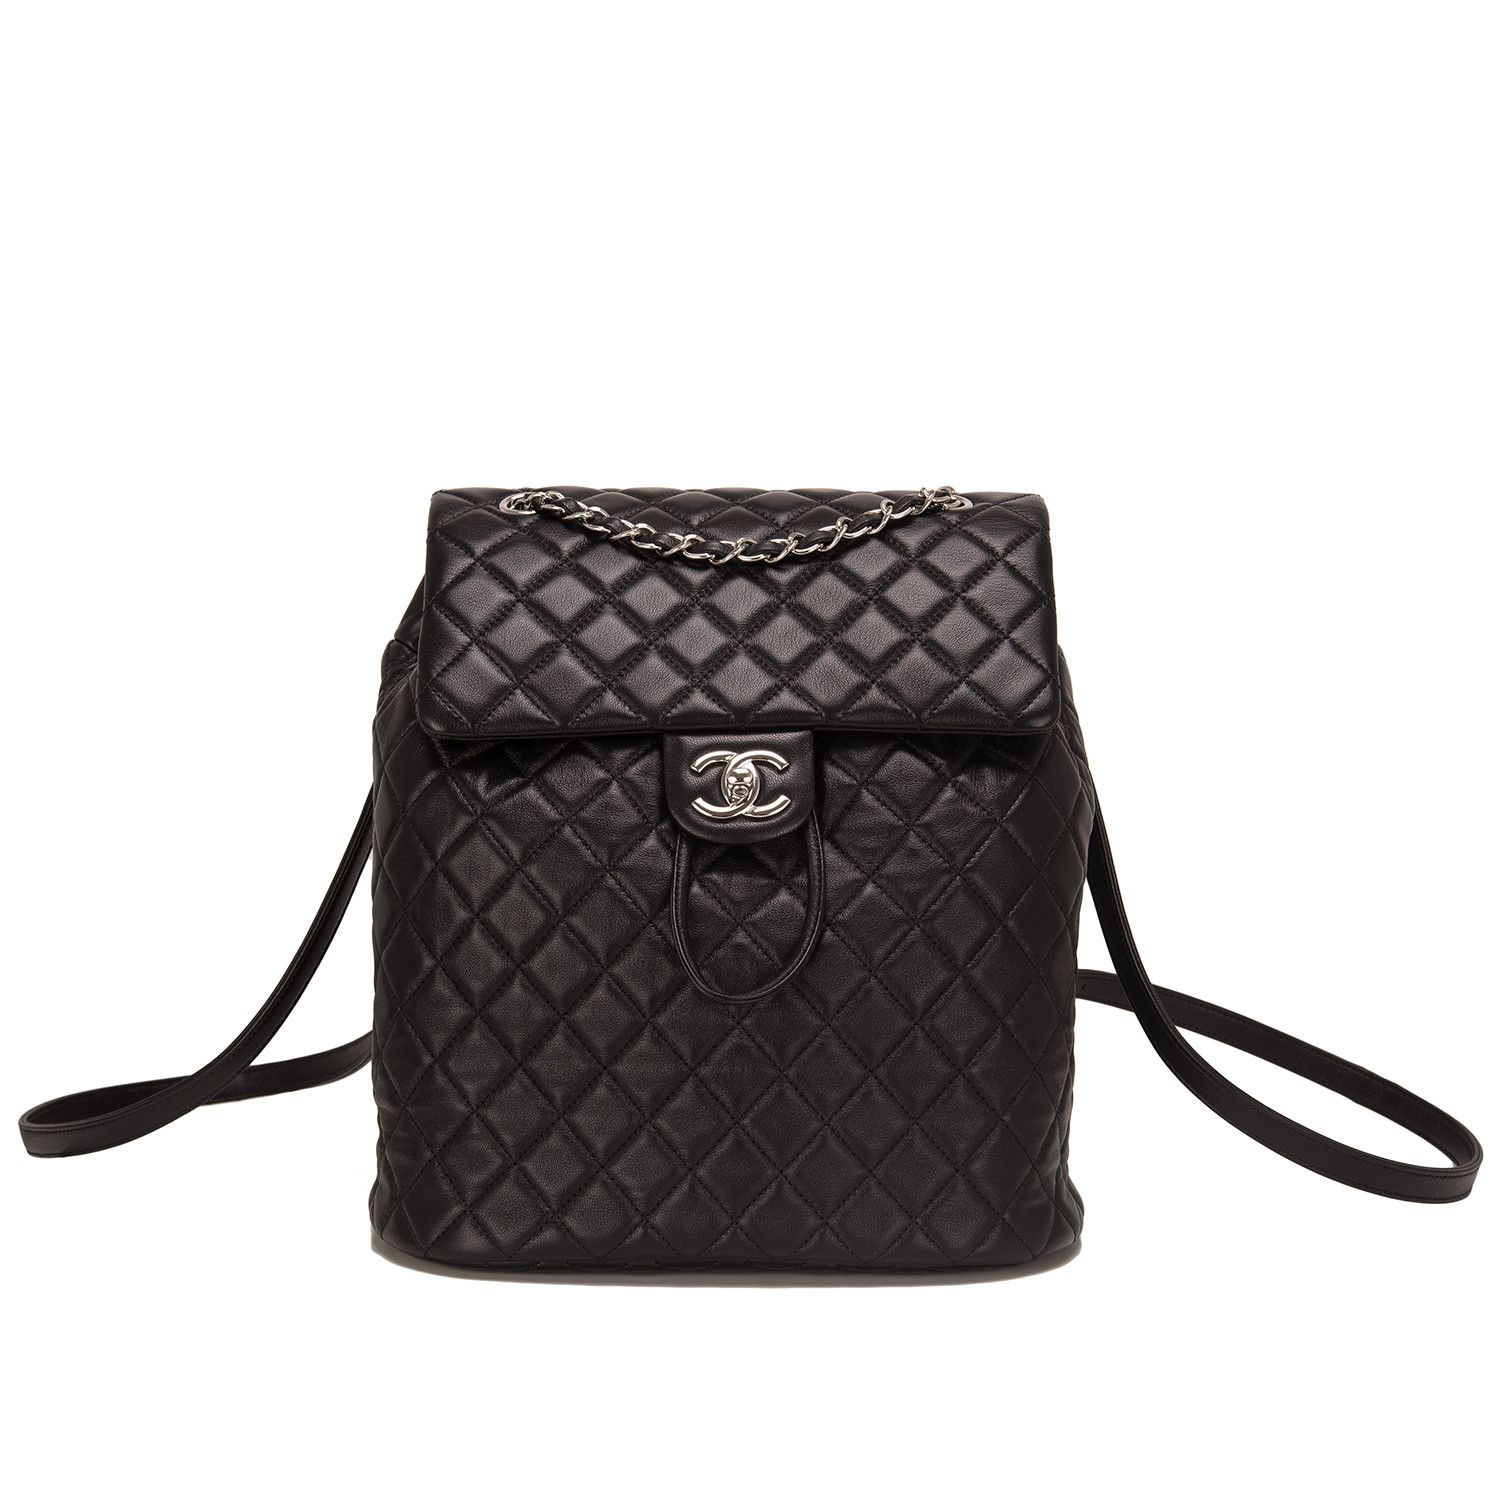 Chanel Urban Spirit Black Quilted Lambskin Large Backpack ... : chanel quilted backpack - Adamdwight.com